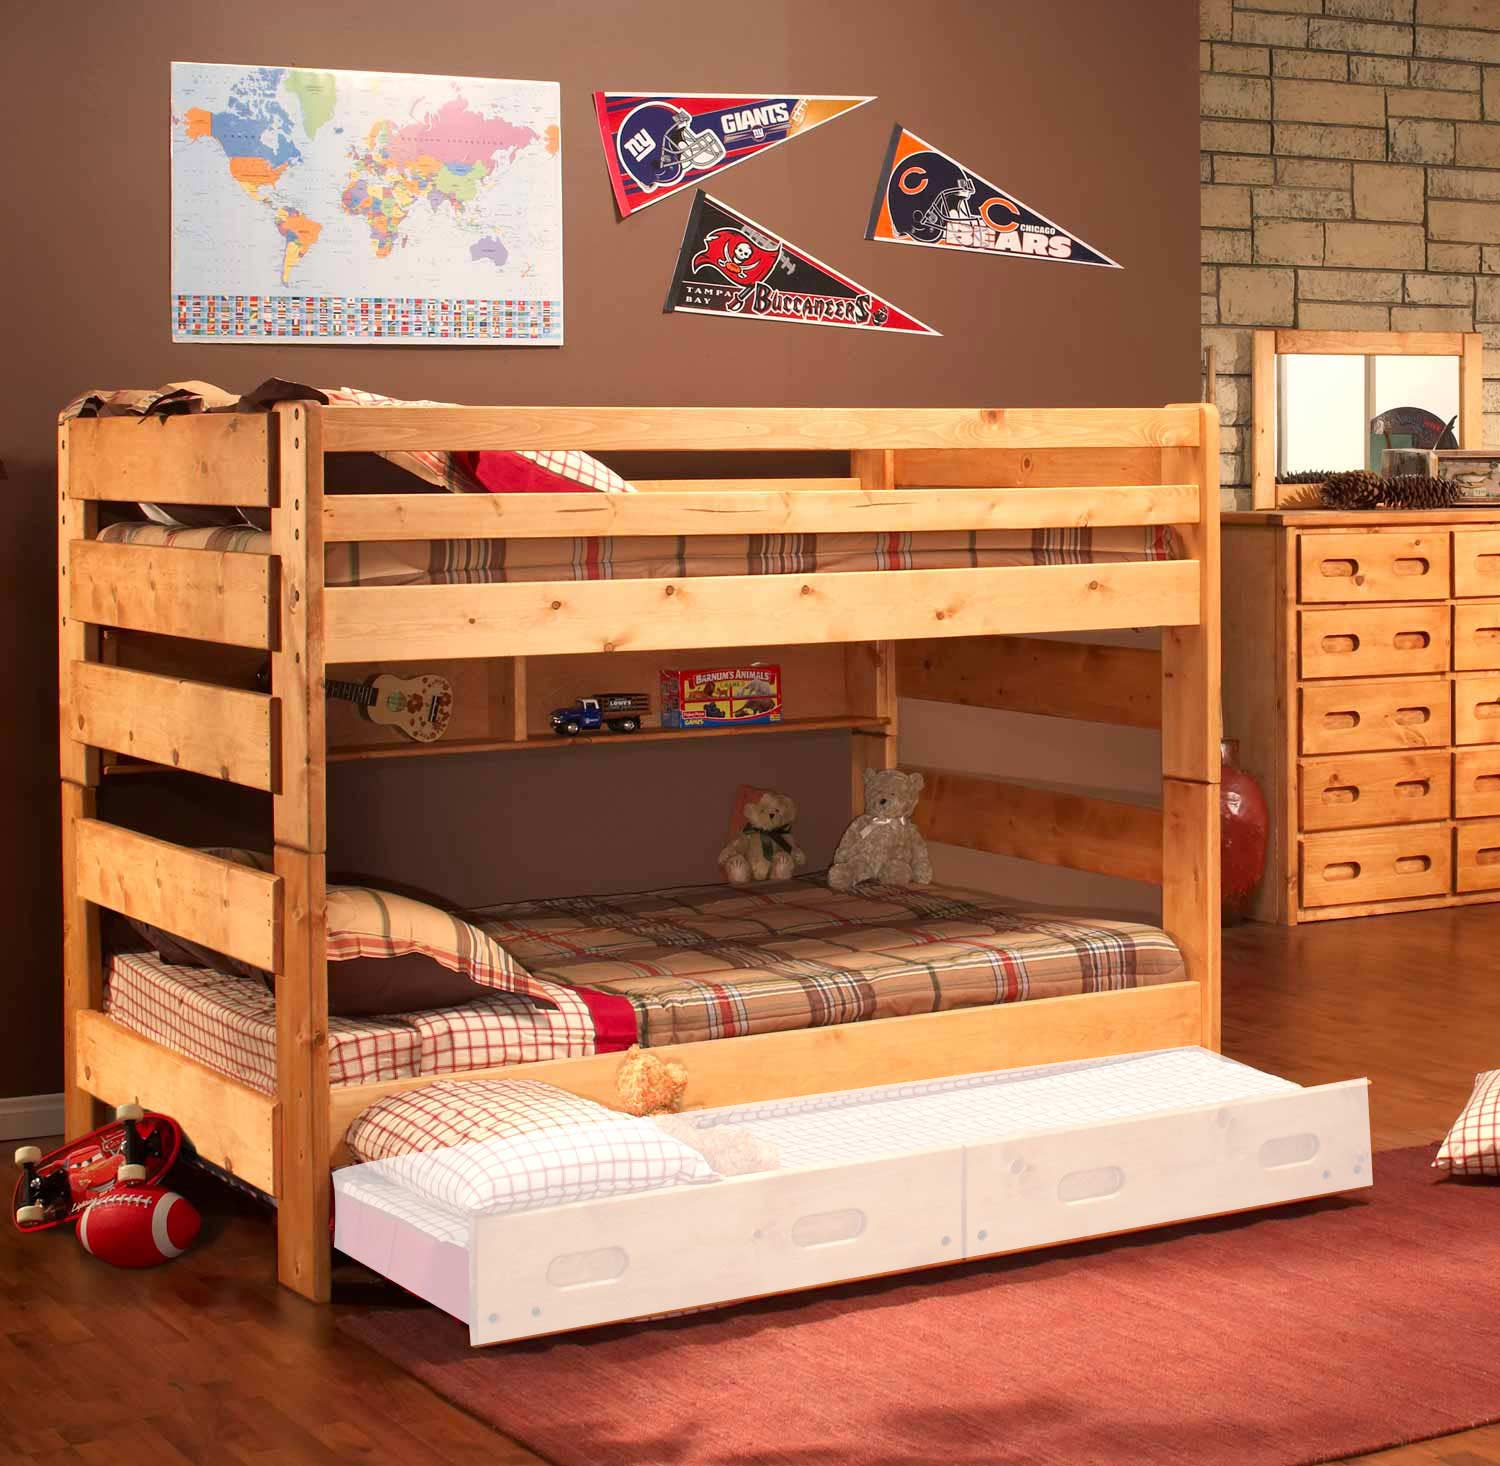 Chelsea Home 3544144 4739 Full Over Full Bunk Bed Cinnamon Chf 3544144 4739 At